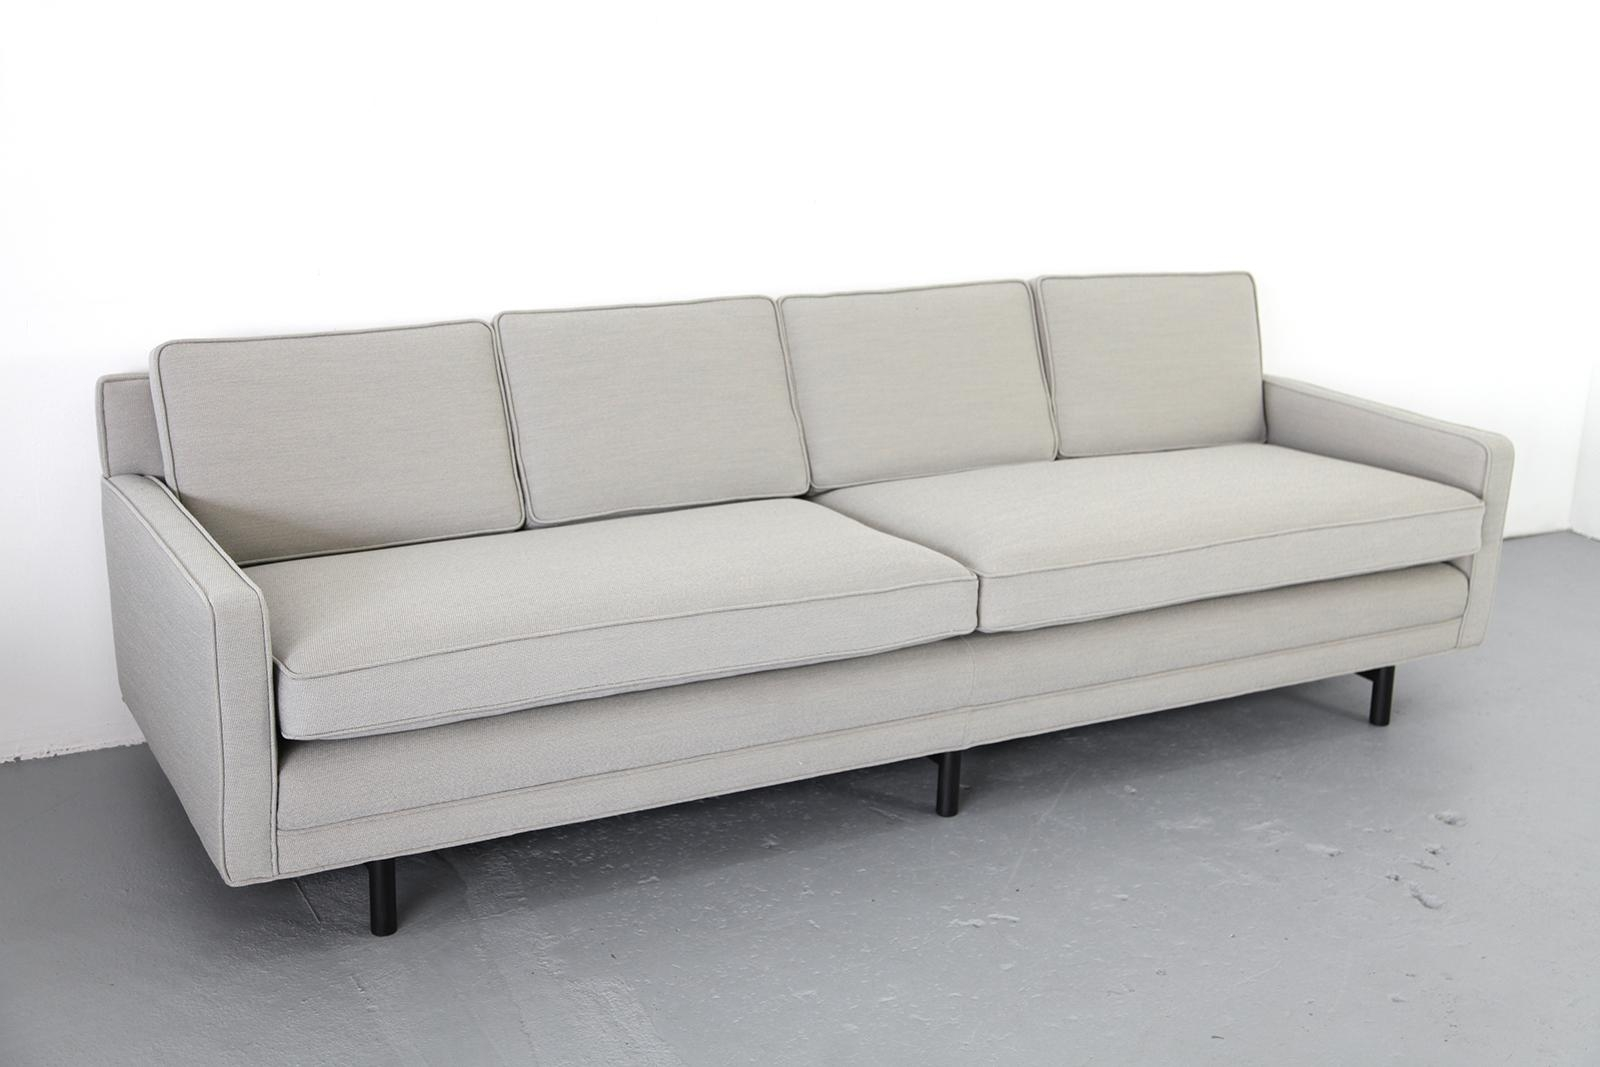 4 Seater Sofapaul Mccobb For Directional For Sale At Pamono Inside 4 Seat Sofas (Image 3 of 20)